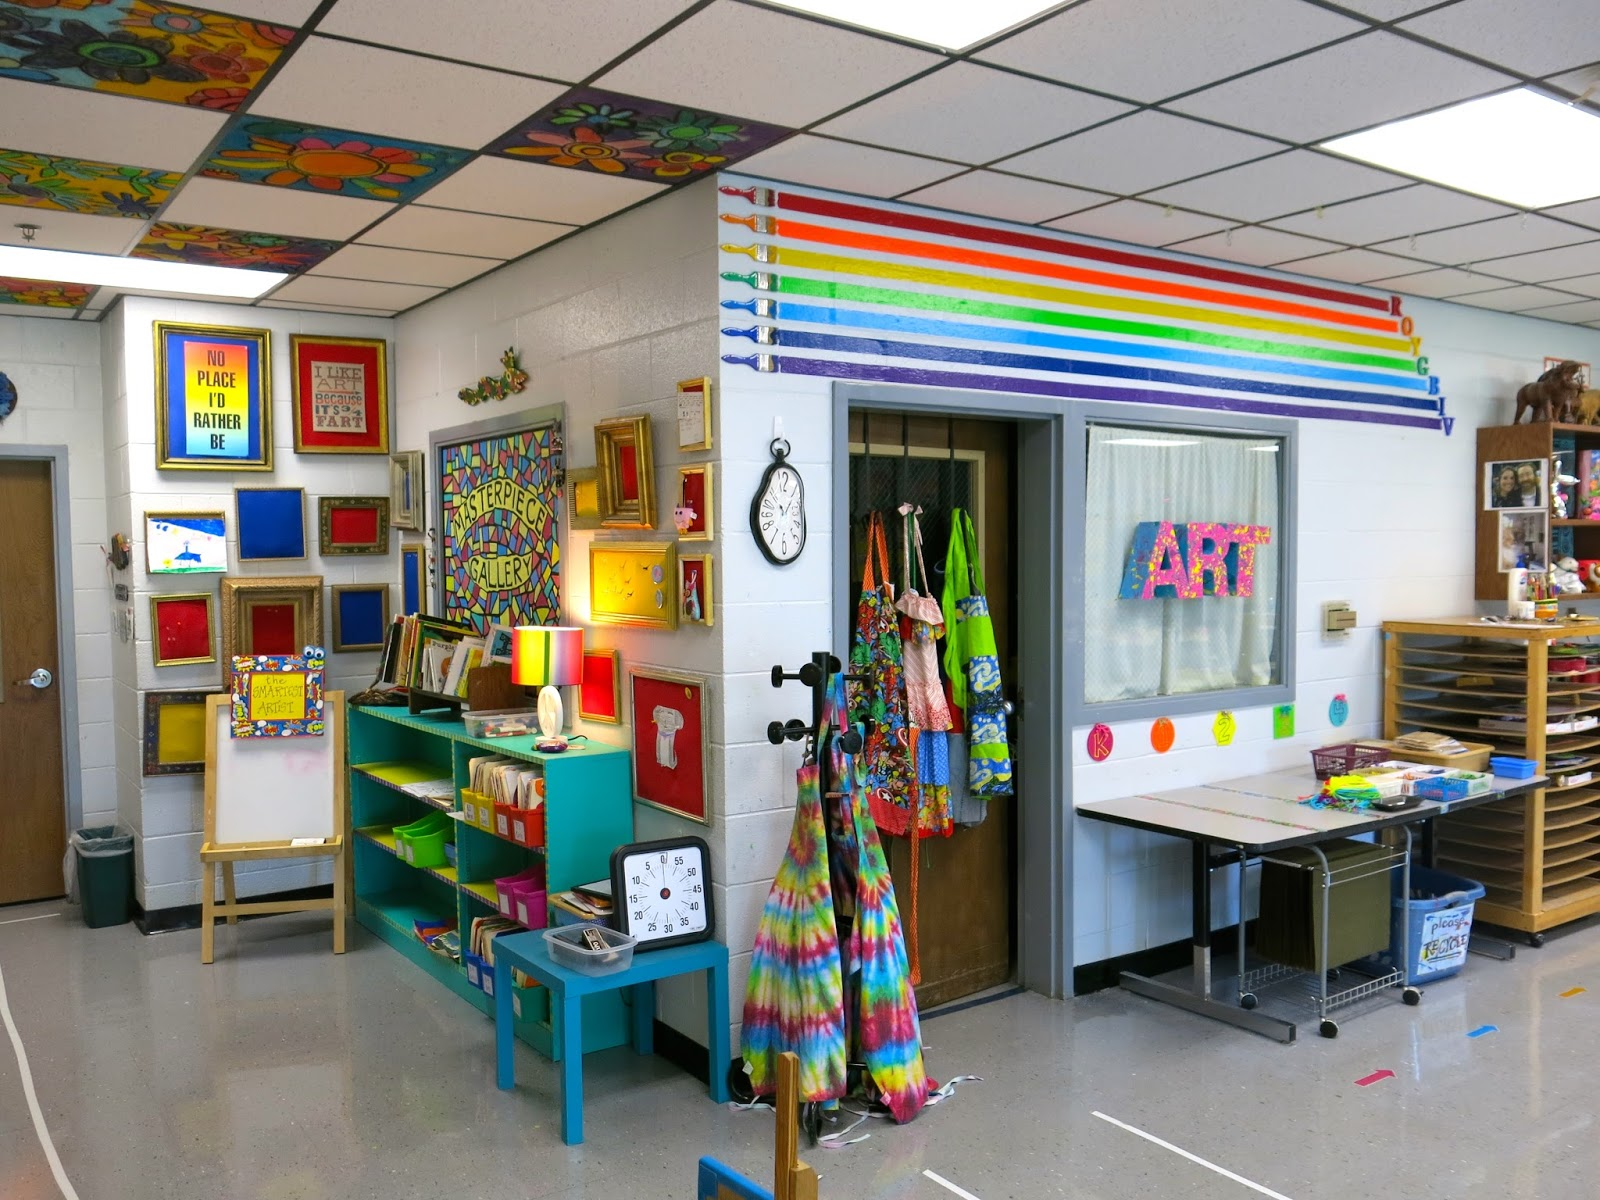 Wanna see what else Iu0027ve made for my art room this year? Here you go! & Cassie Stephens: In the Art Room: Roy G. Biv Decor!